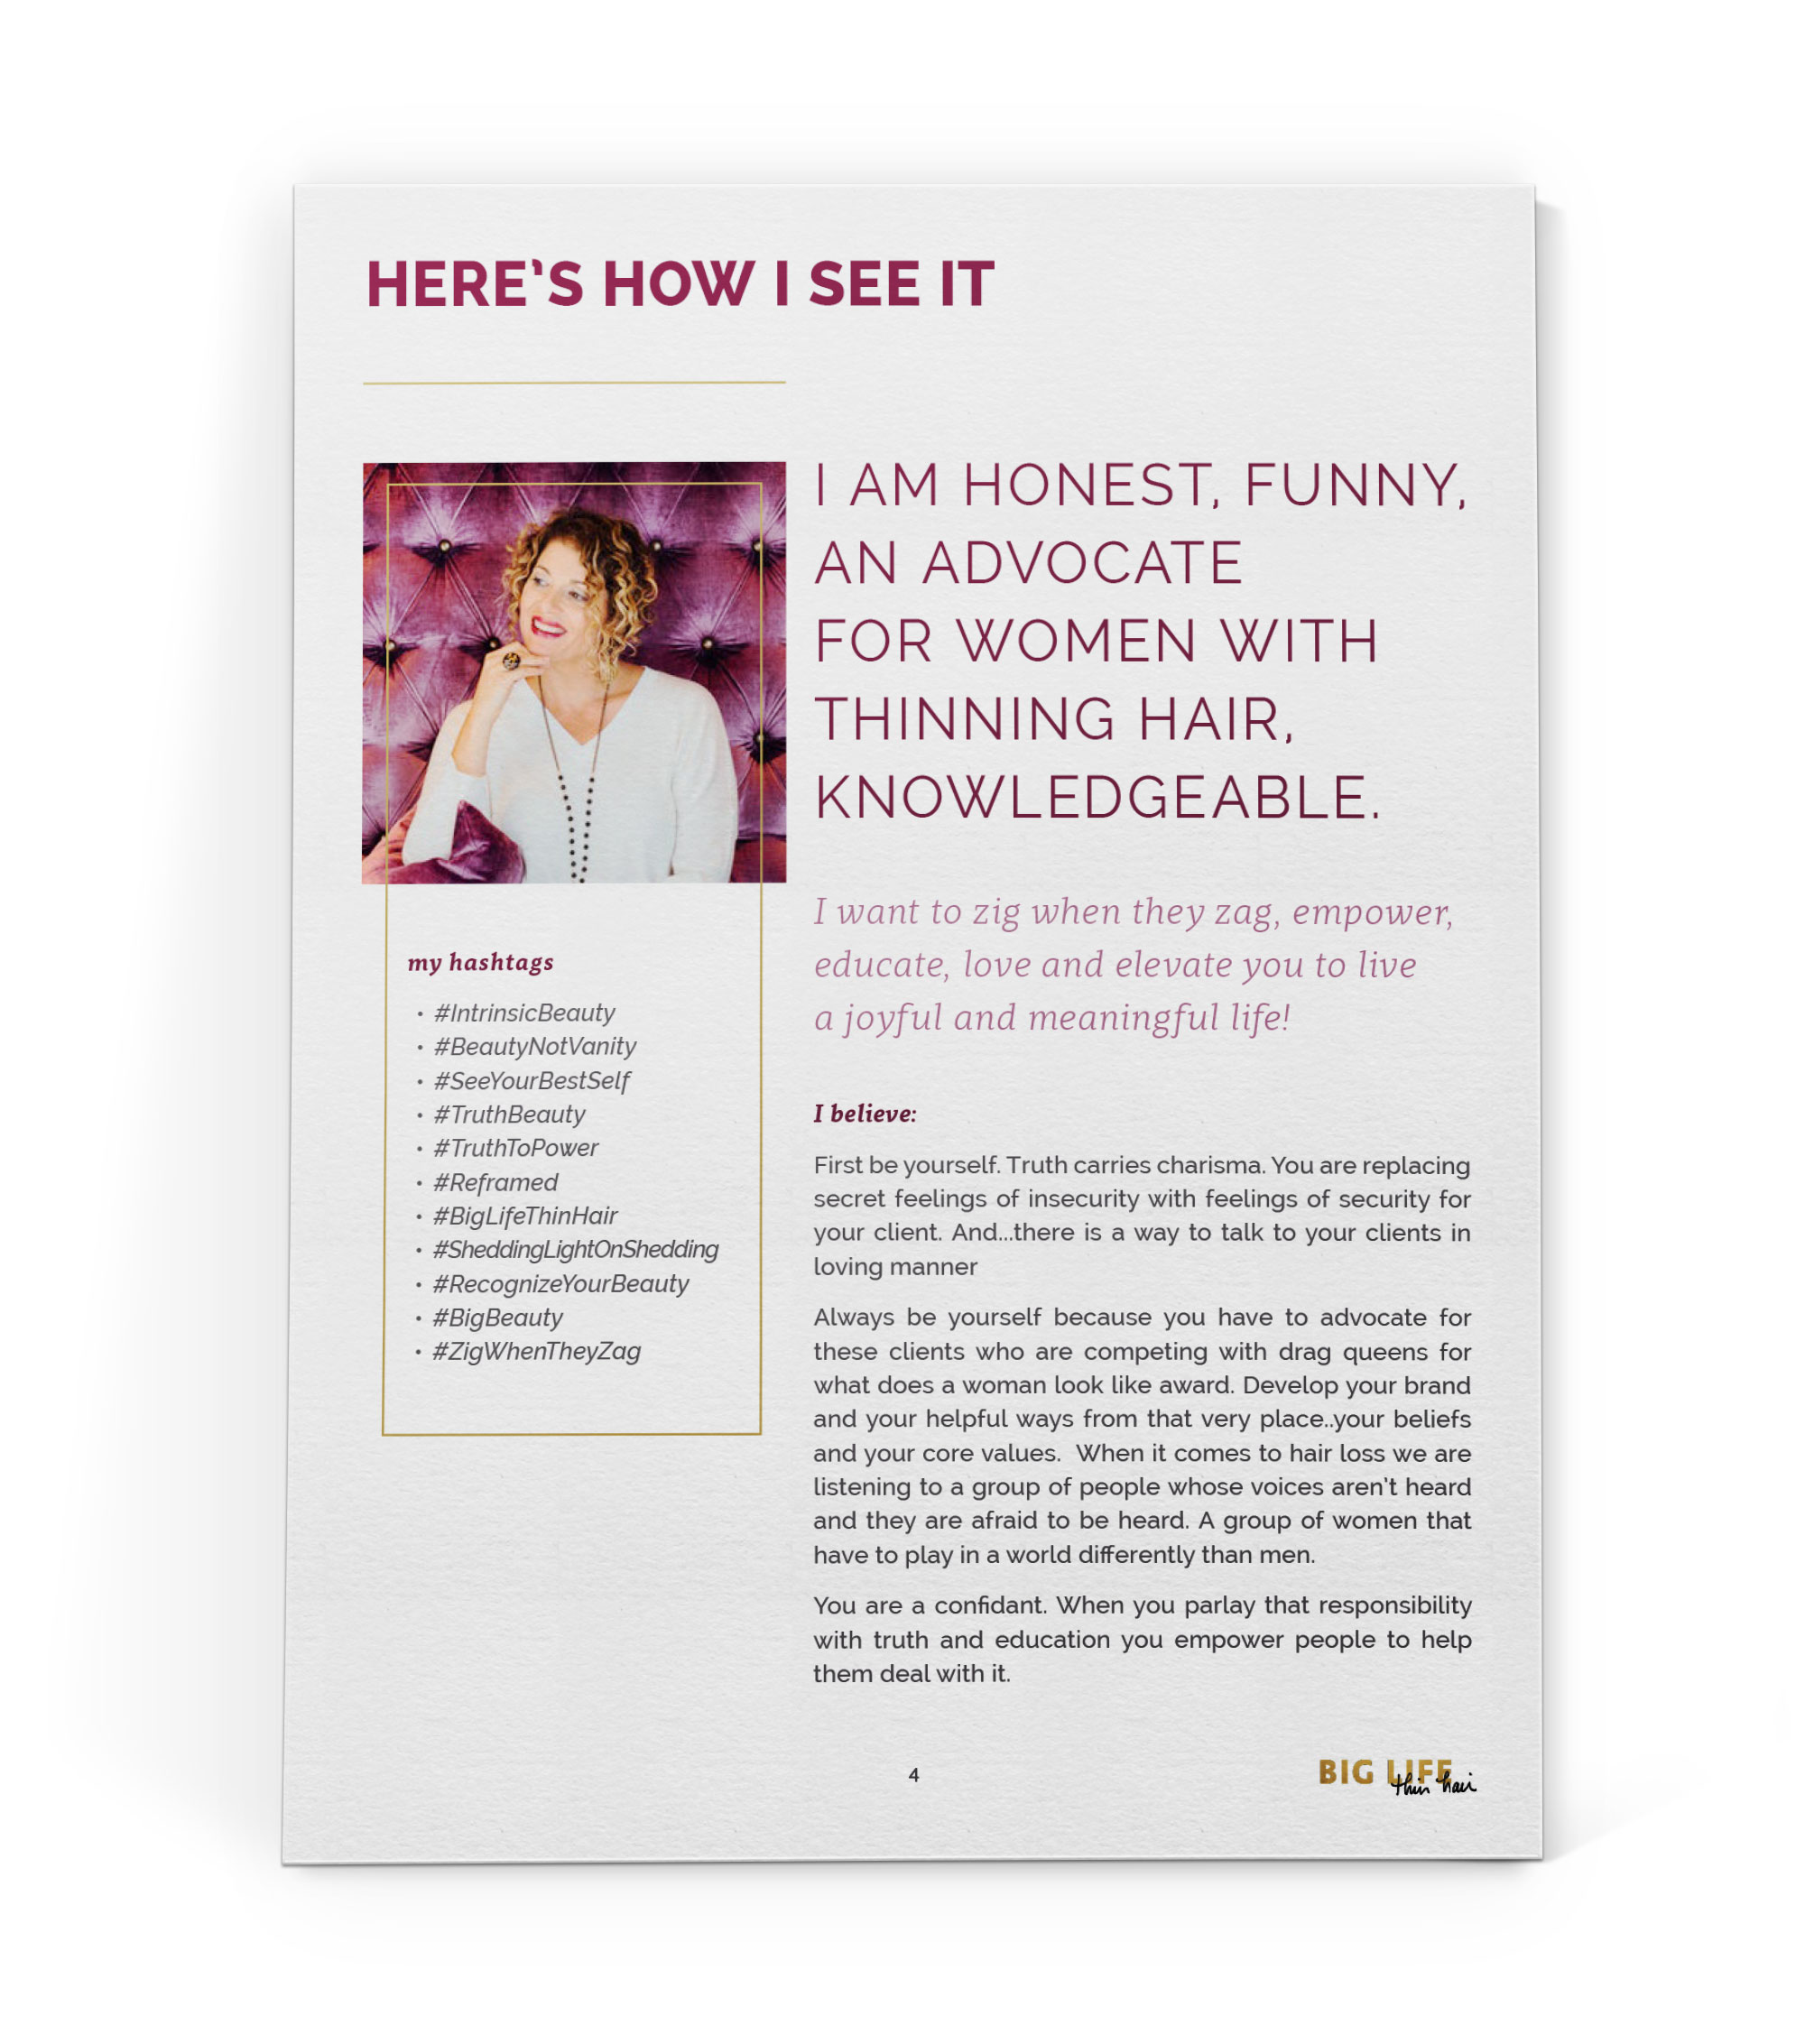 big-life-thin-hair-ebook-layout-design-2.jpg